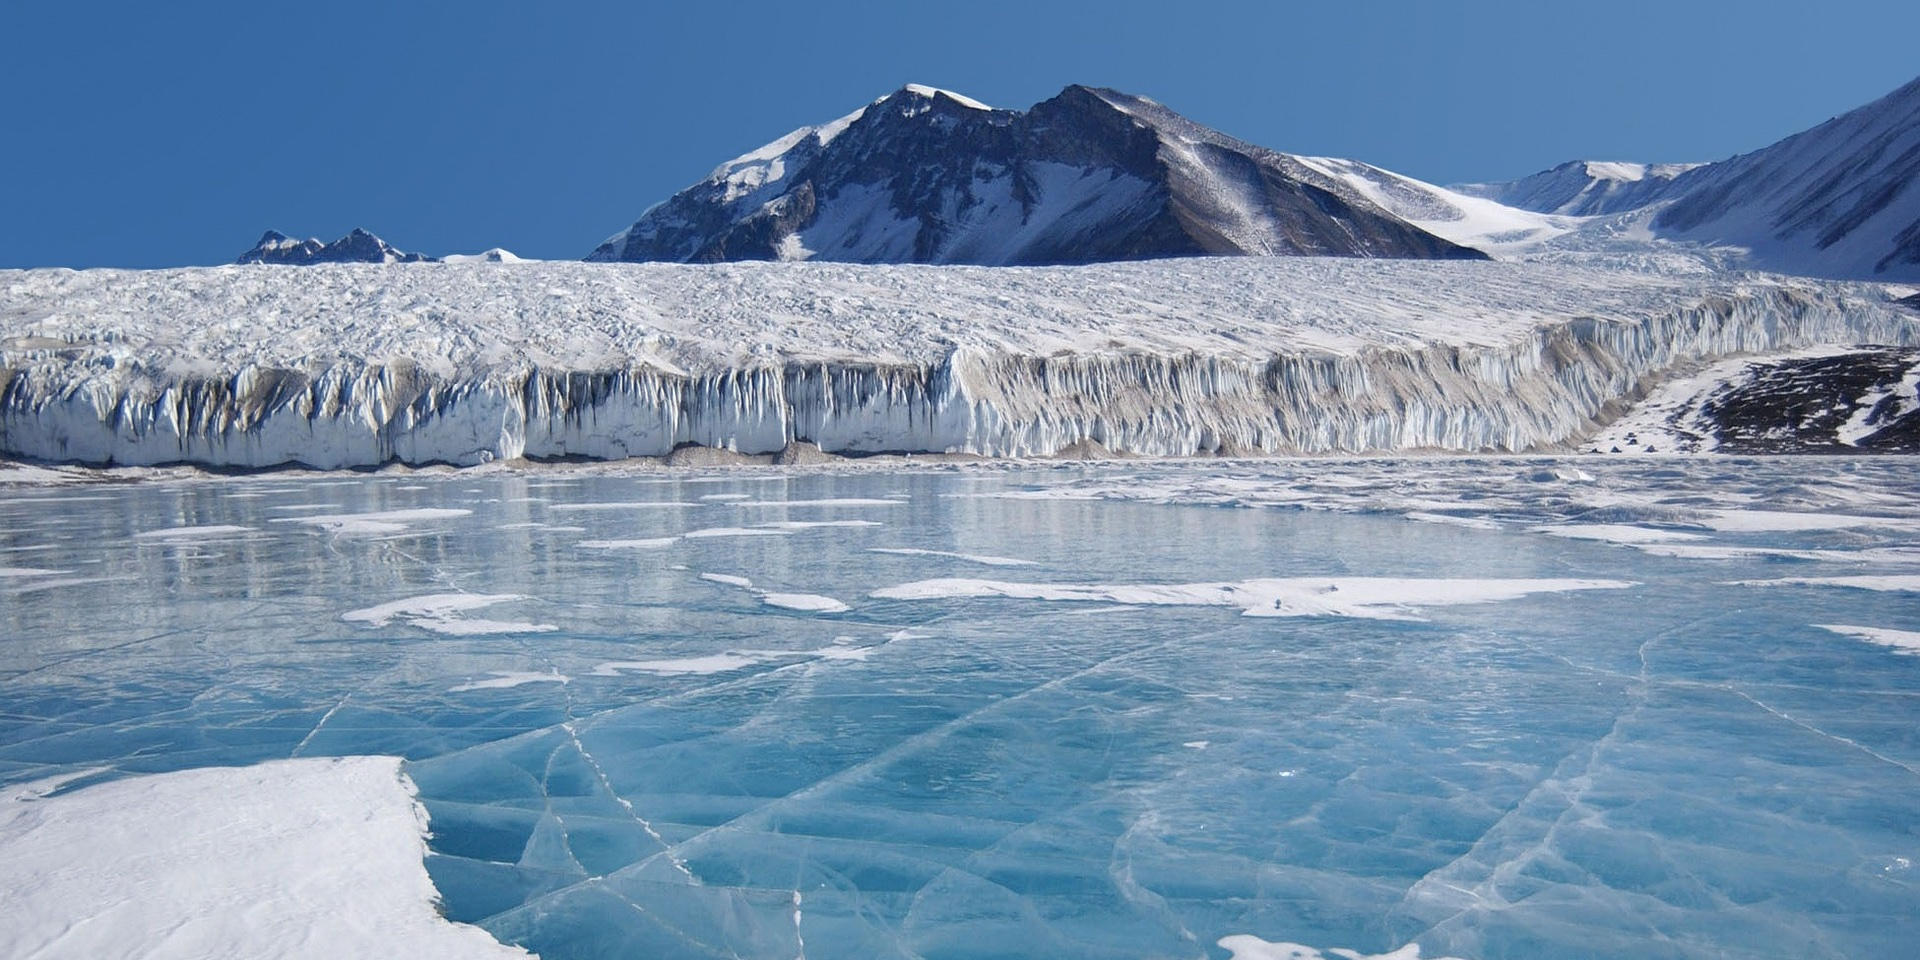 Climate Change Weekly: New CO2 record, Antarctic ice thinning, political plans, and more